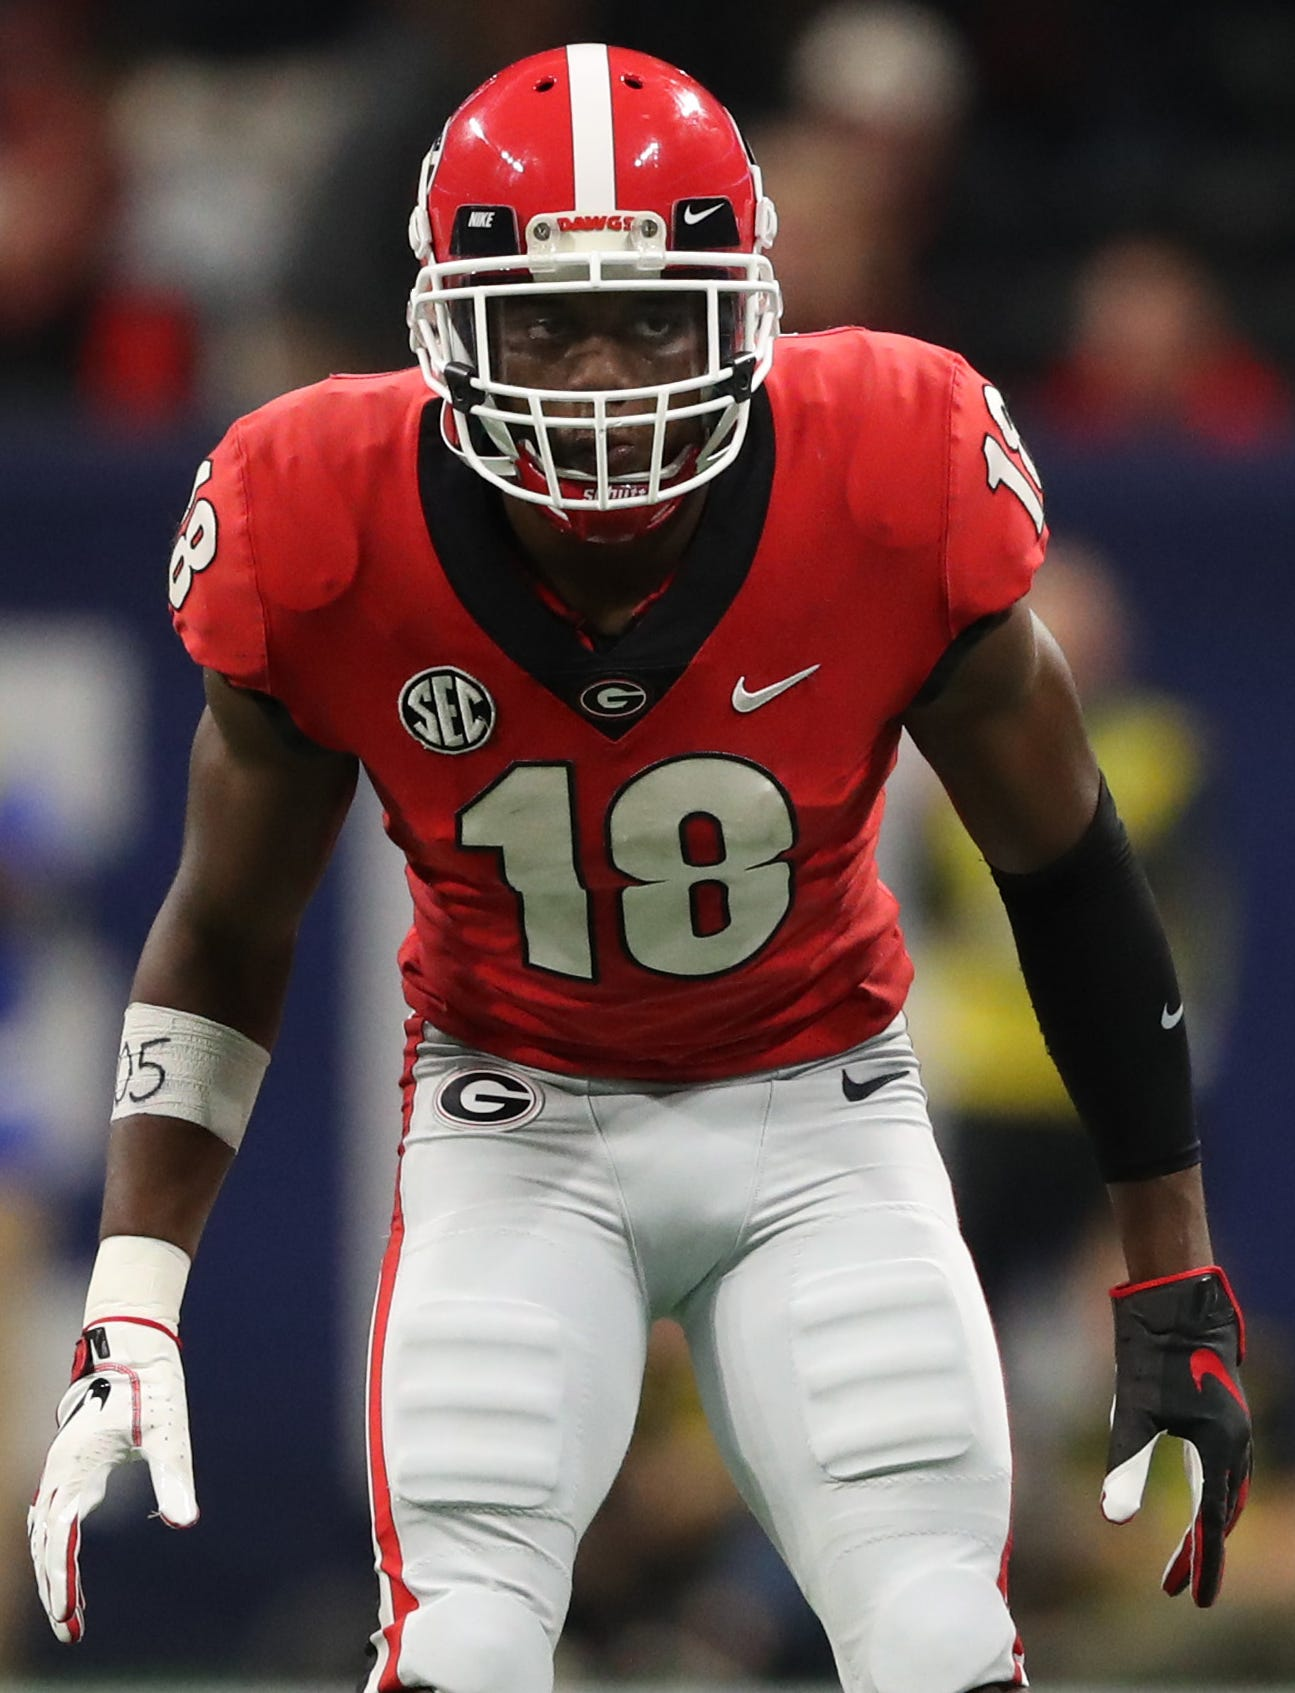 Former Georgia star cornerback DeAndre Baker is ready to prove his game was worthy of being a first-round pick of the Giants at No. 30.